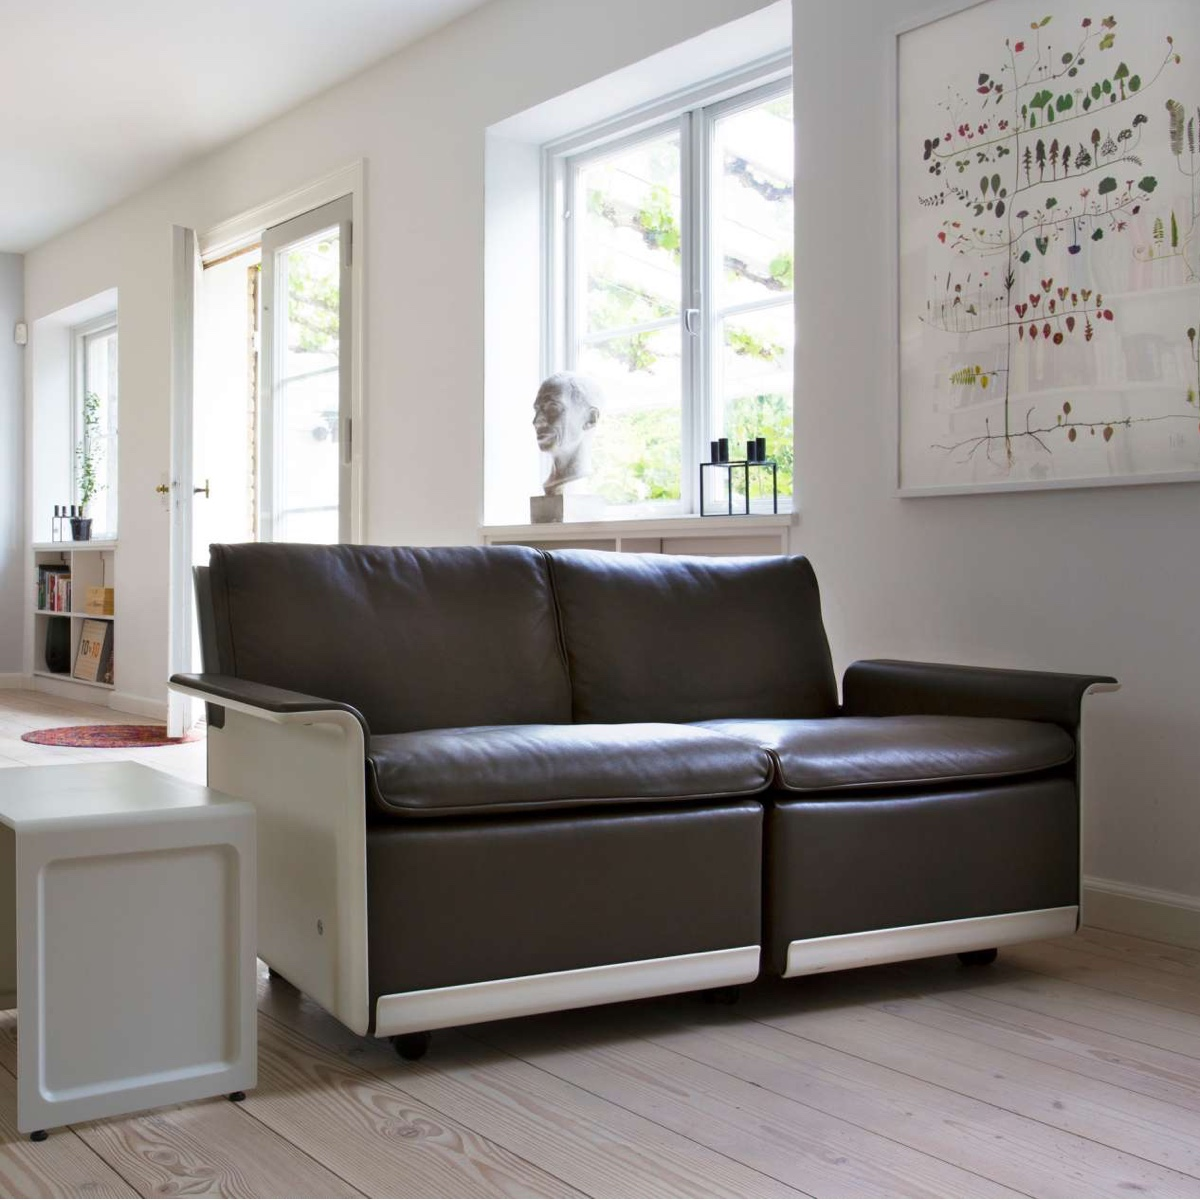 620 low-back two-seat sofa